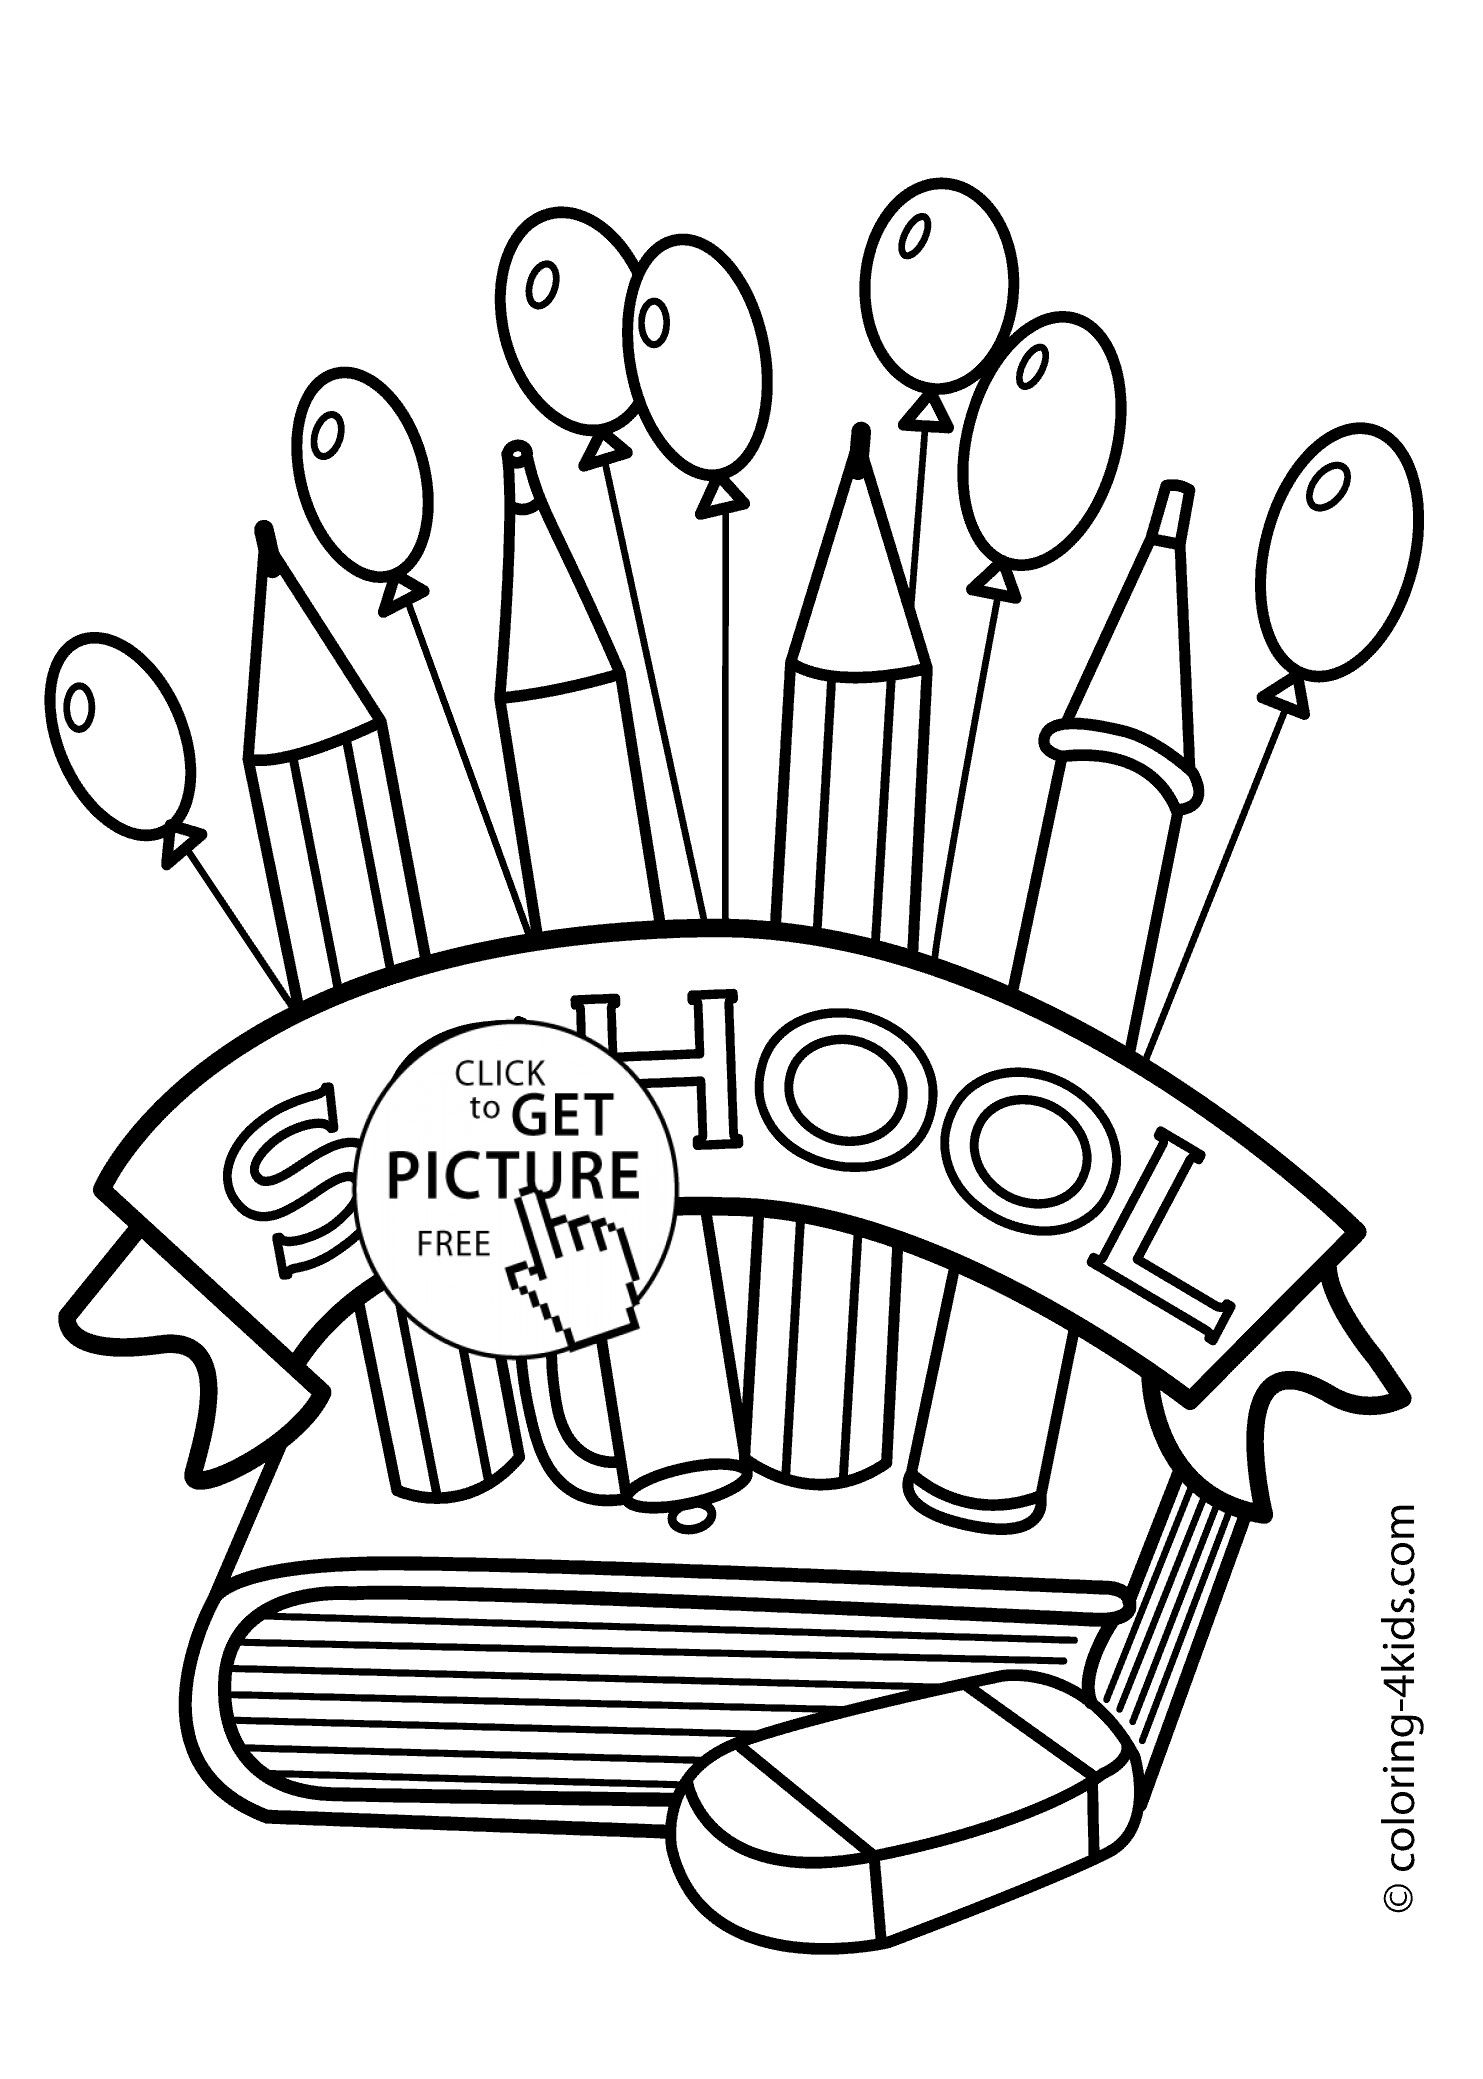 Printable 100 Days Of School Coloring Pages in 2020 (With images ... | 2079x1483